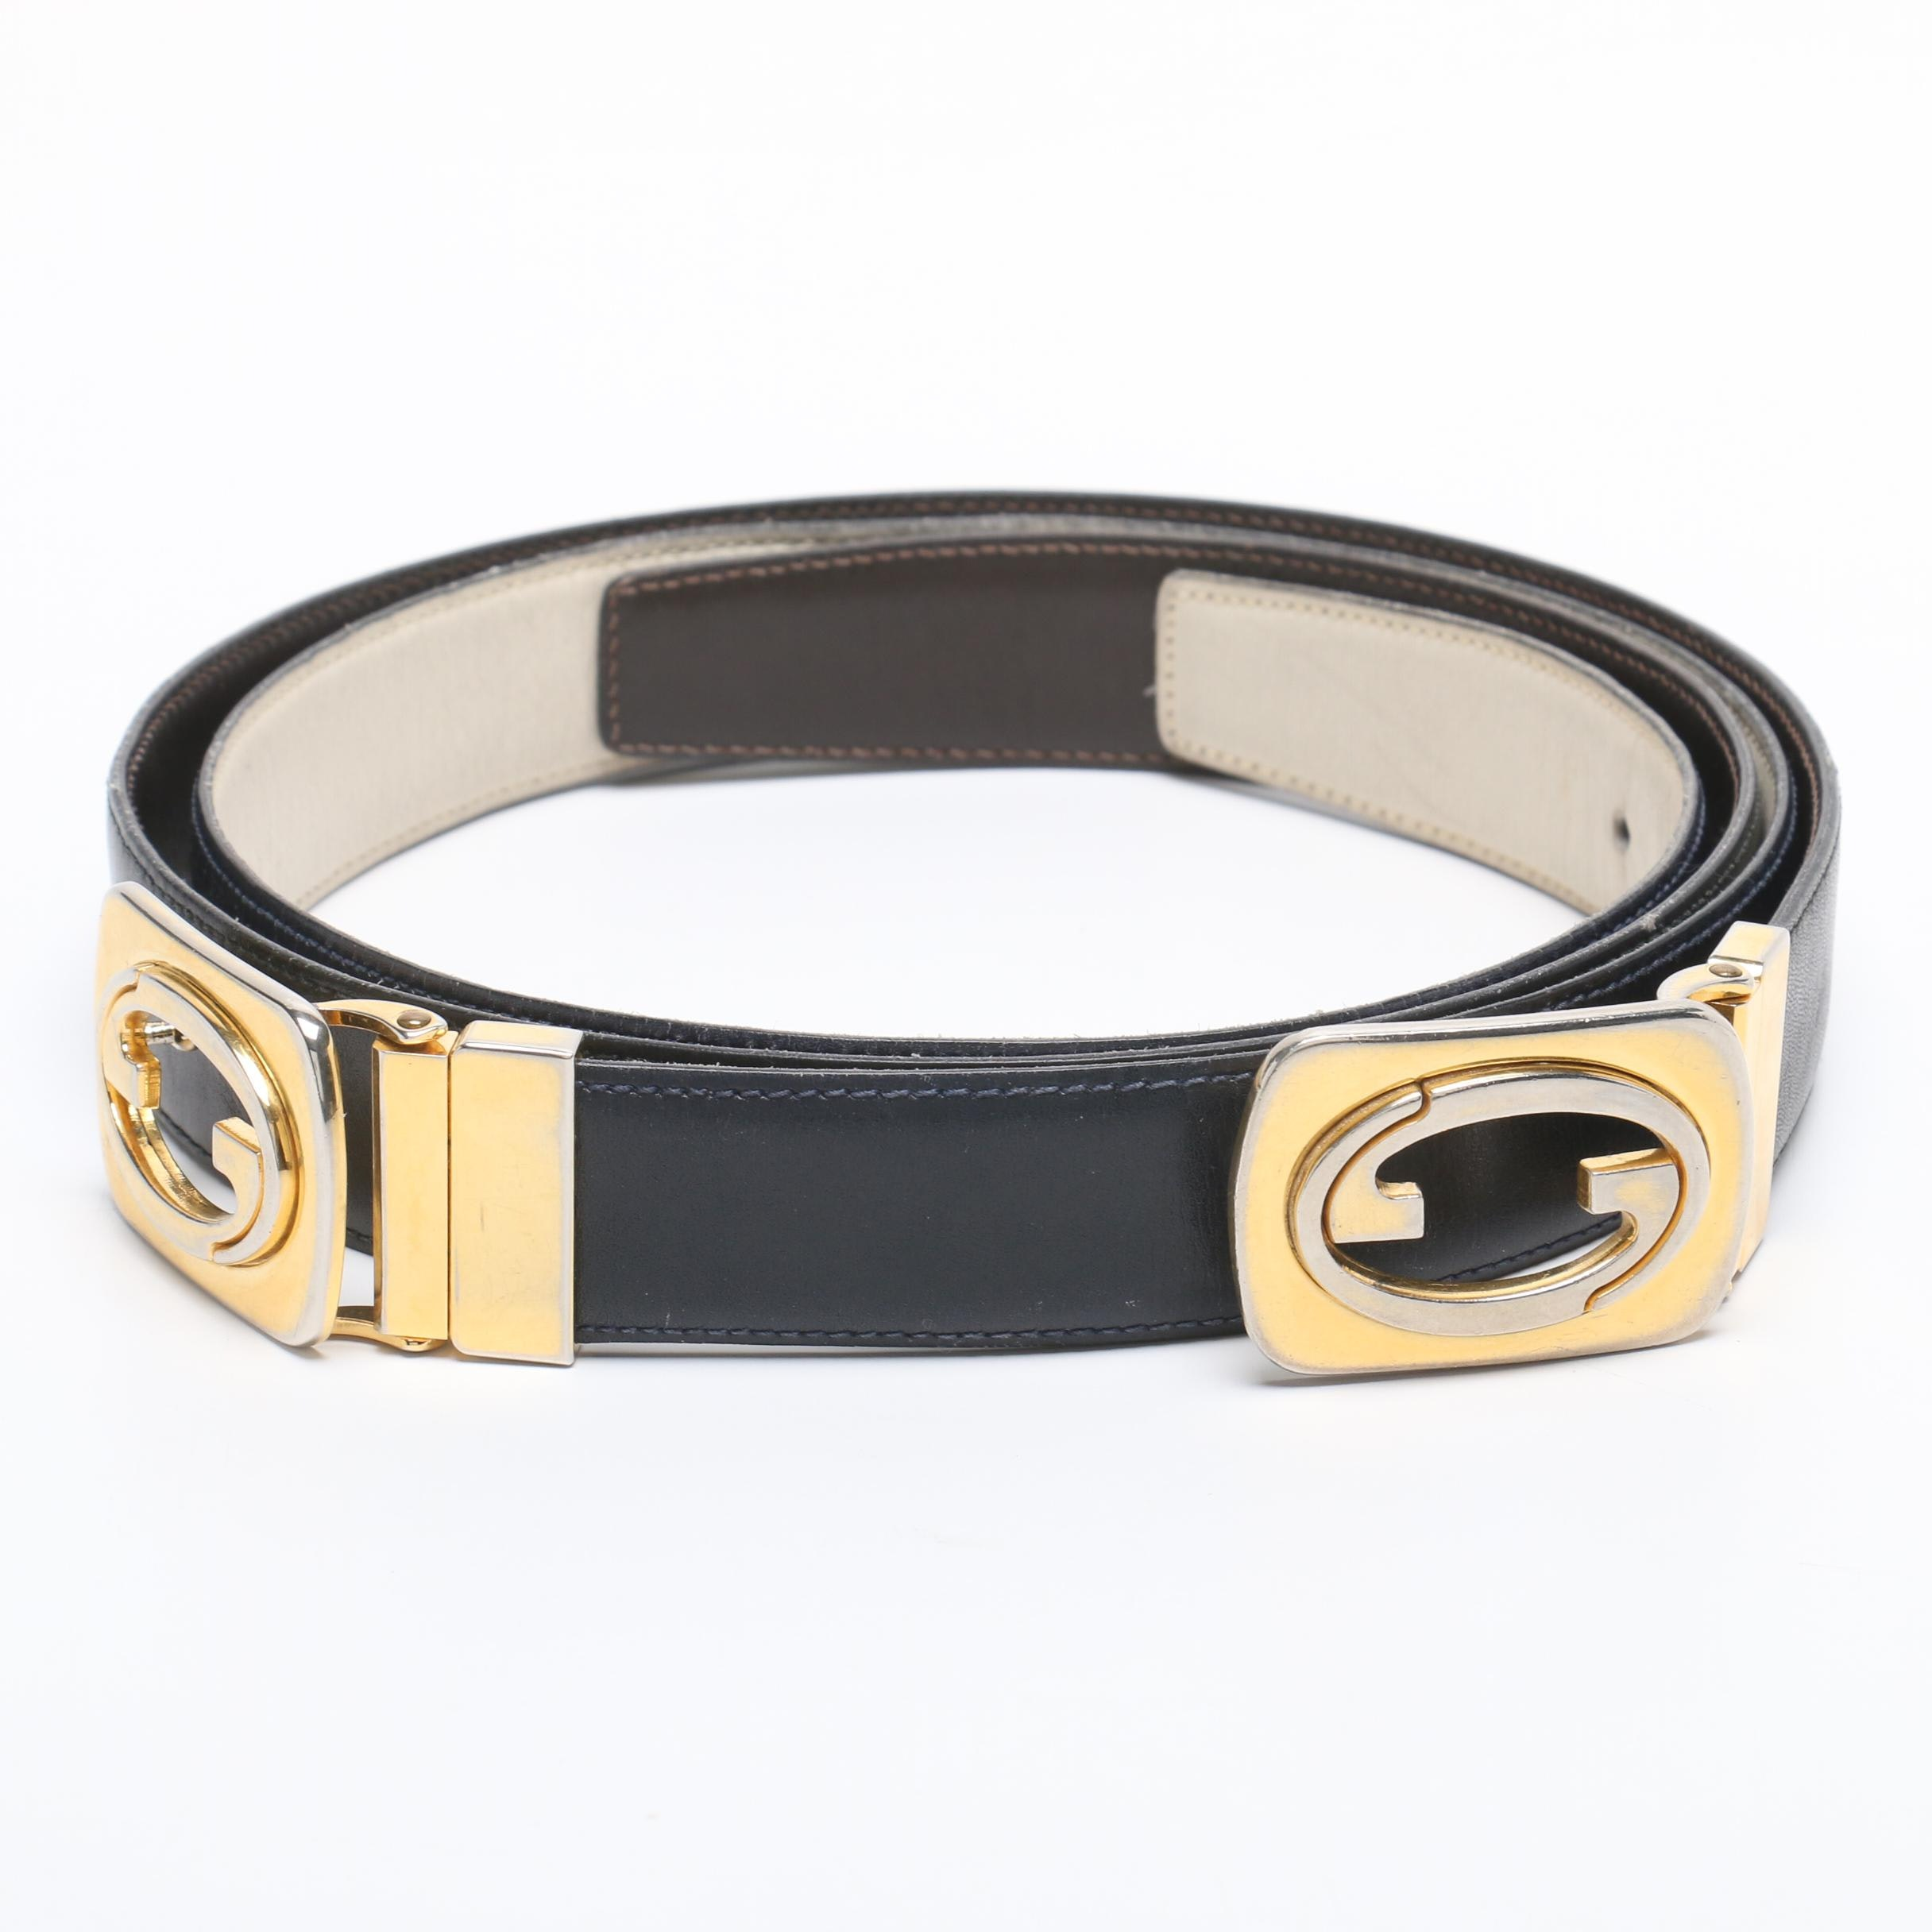 Vintage Gucci GG Buckle Leather Belts